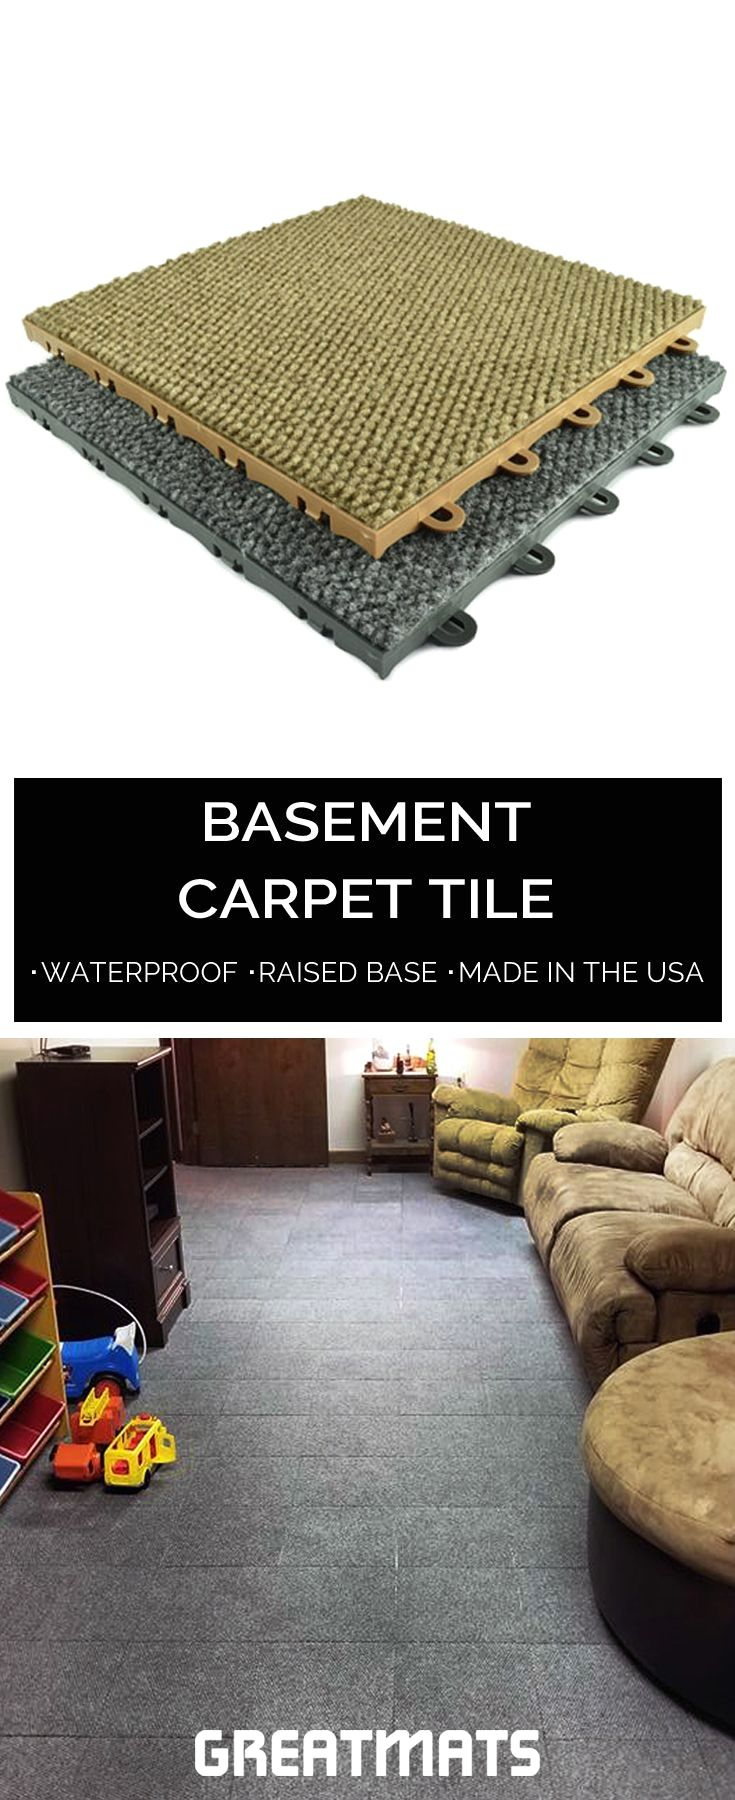 Our Own Basement Carpet Tiles Are Made In The Usa And Easy To